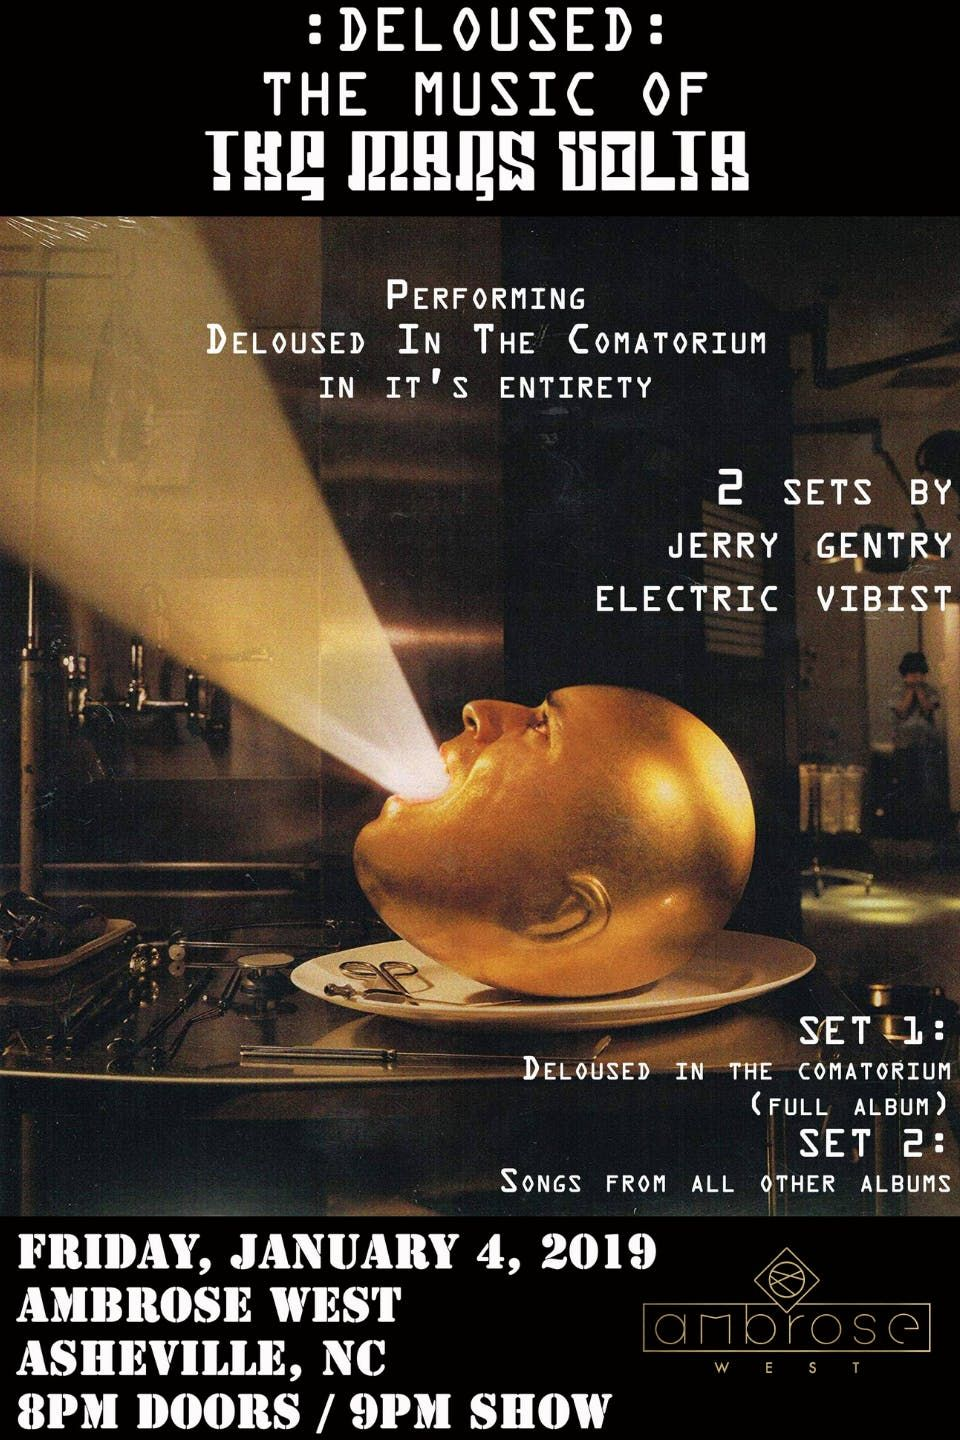 Deloused The Music of The Mars Volta